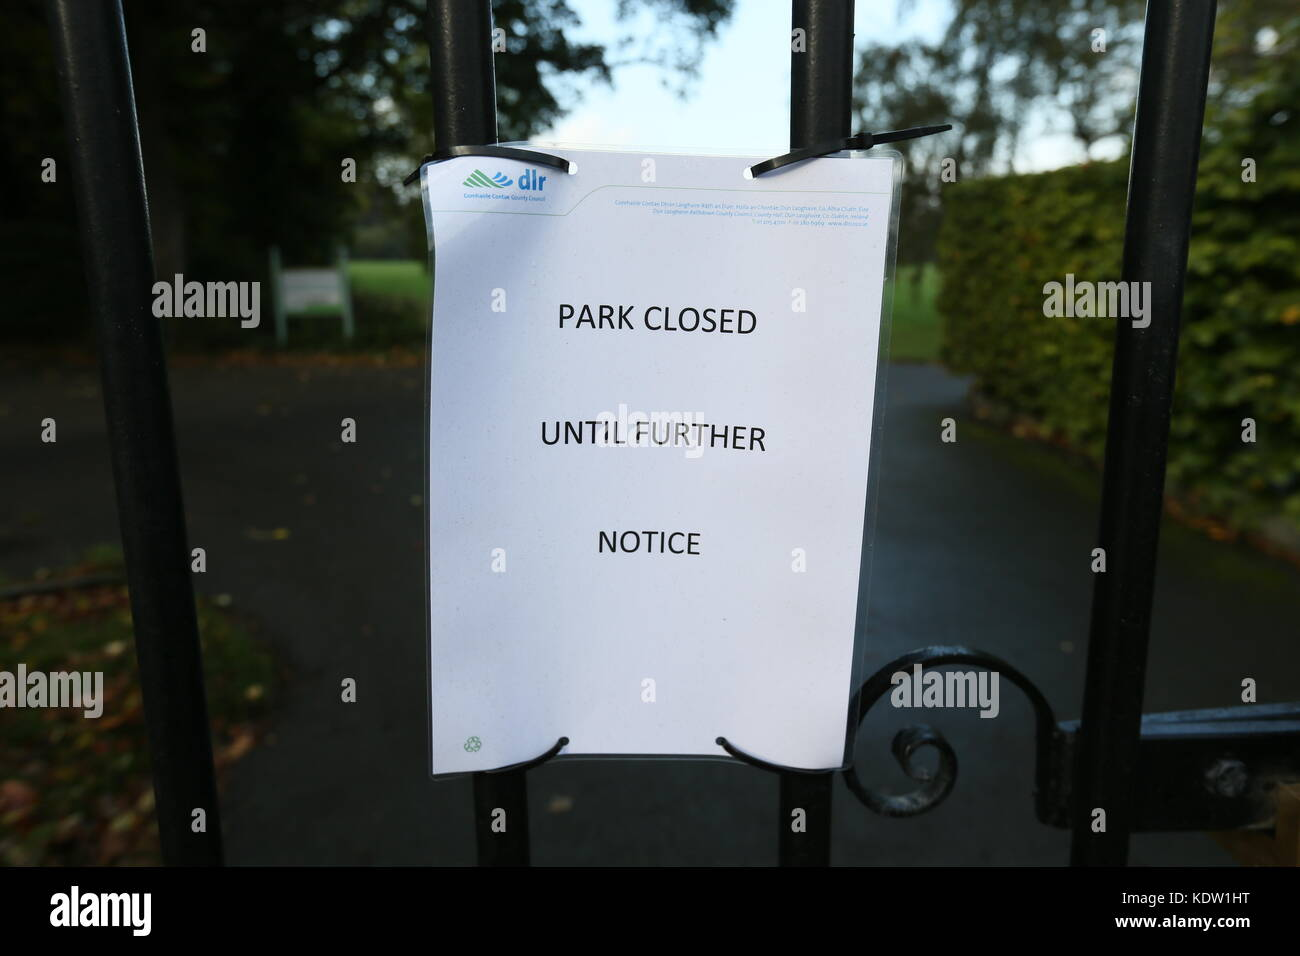 Dublin, Ireland. 16th Oct, 2017. A Dun Laoghaire Rathdown County Council notice on the gates of Dublin's Marlay - Stock Image